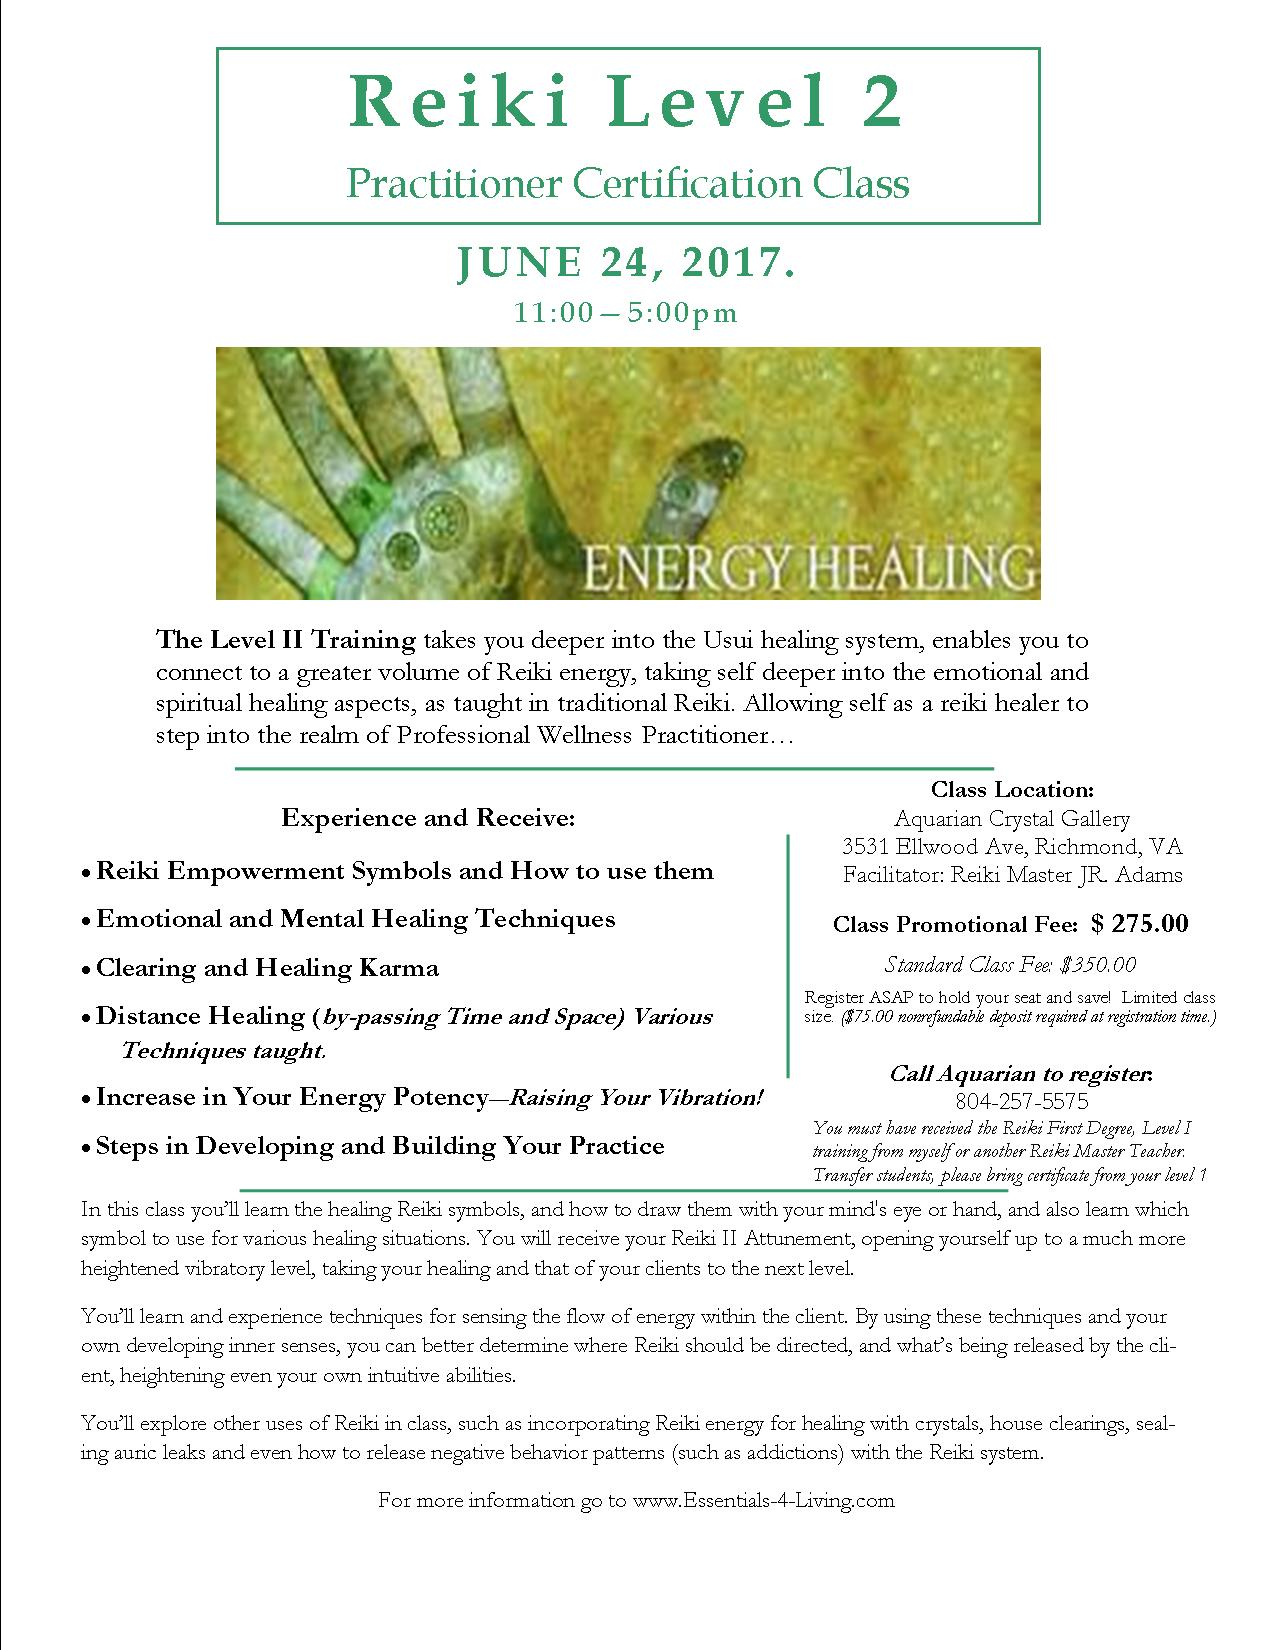 Reiki Level II Practitioner Class Flier summer 2017